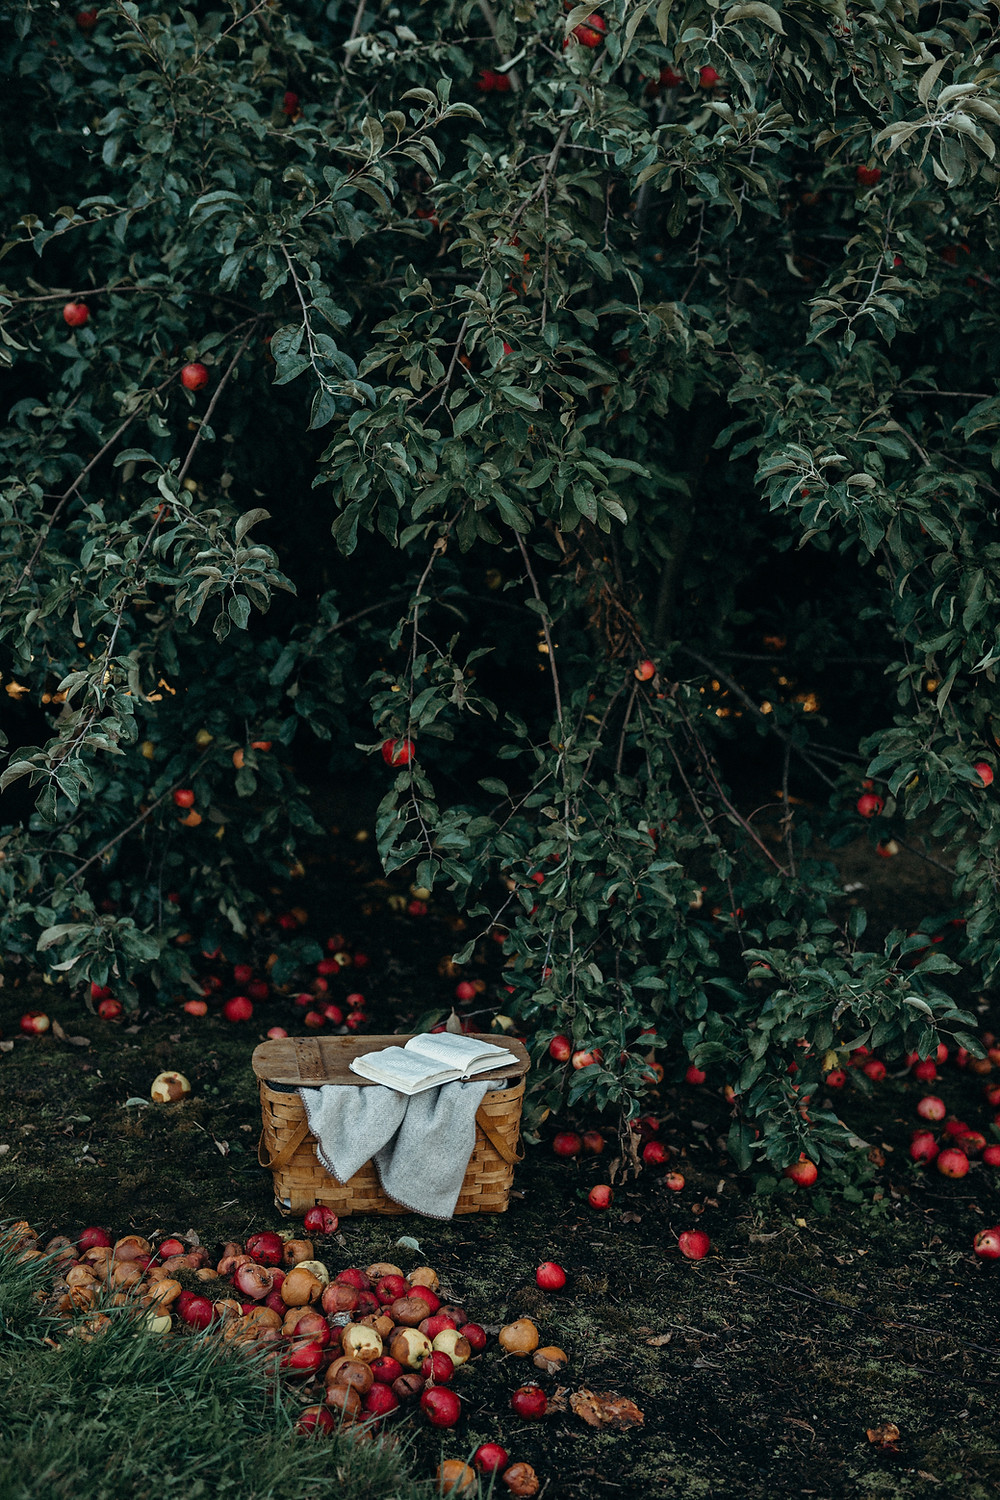 An apple tree and picnic basket